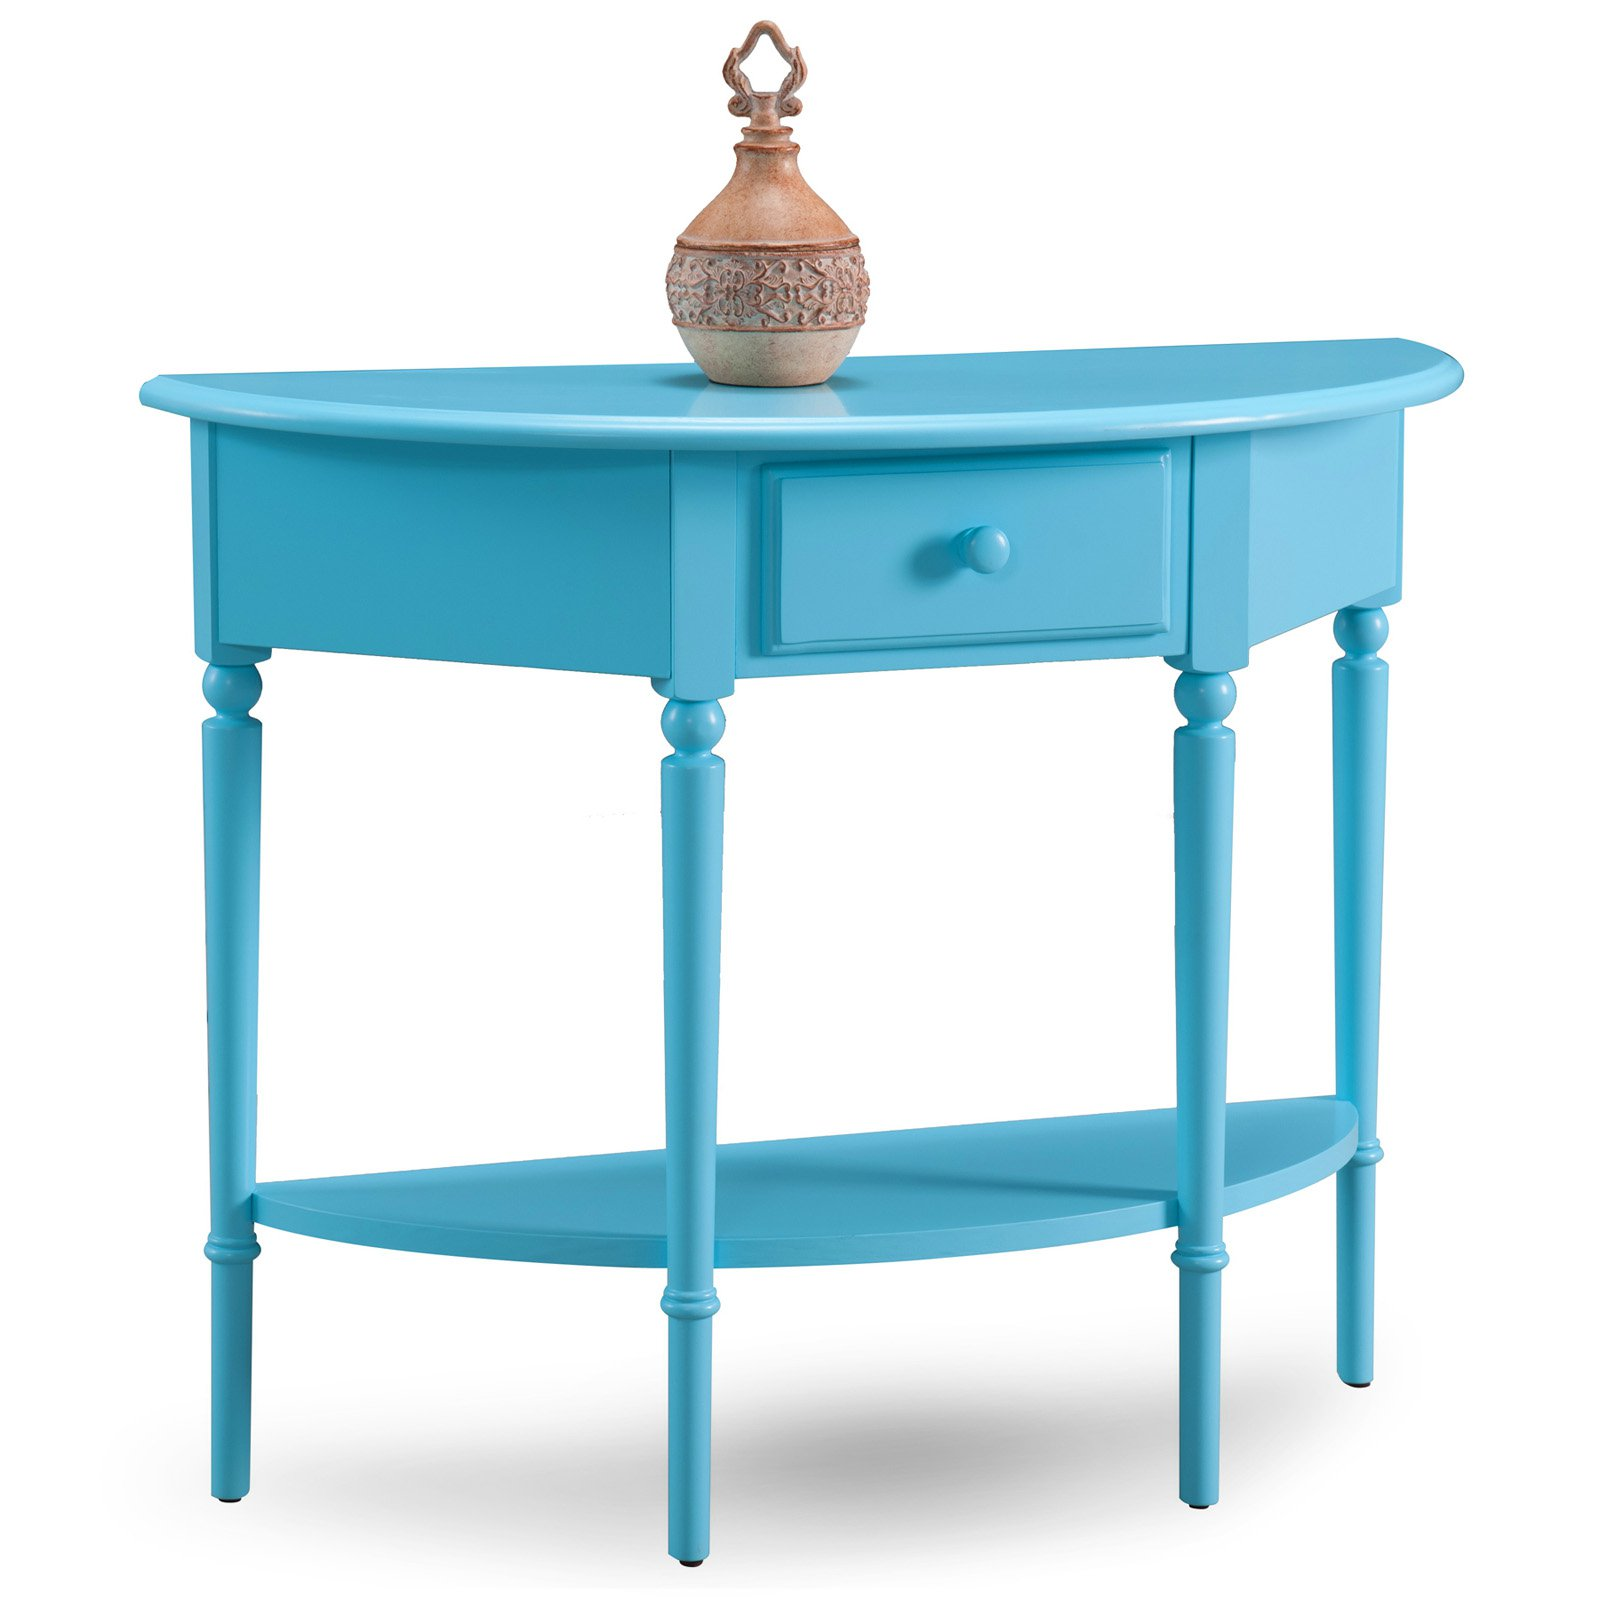 Leick Furniture Demilune Sofa Table with Shelf by Leick Furniture